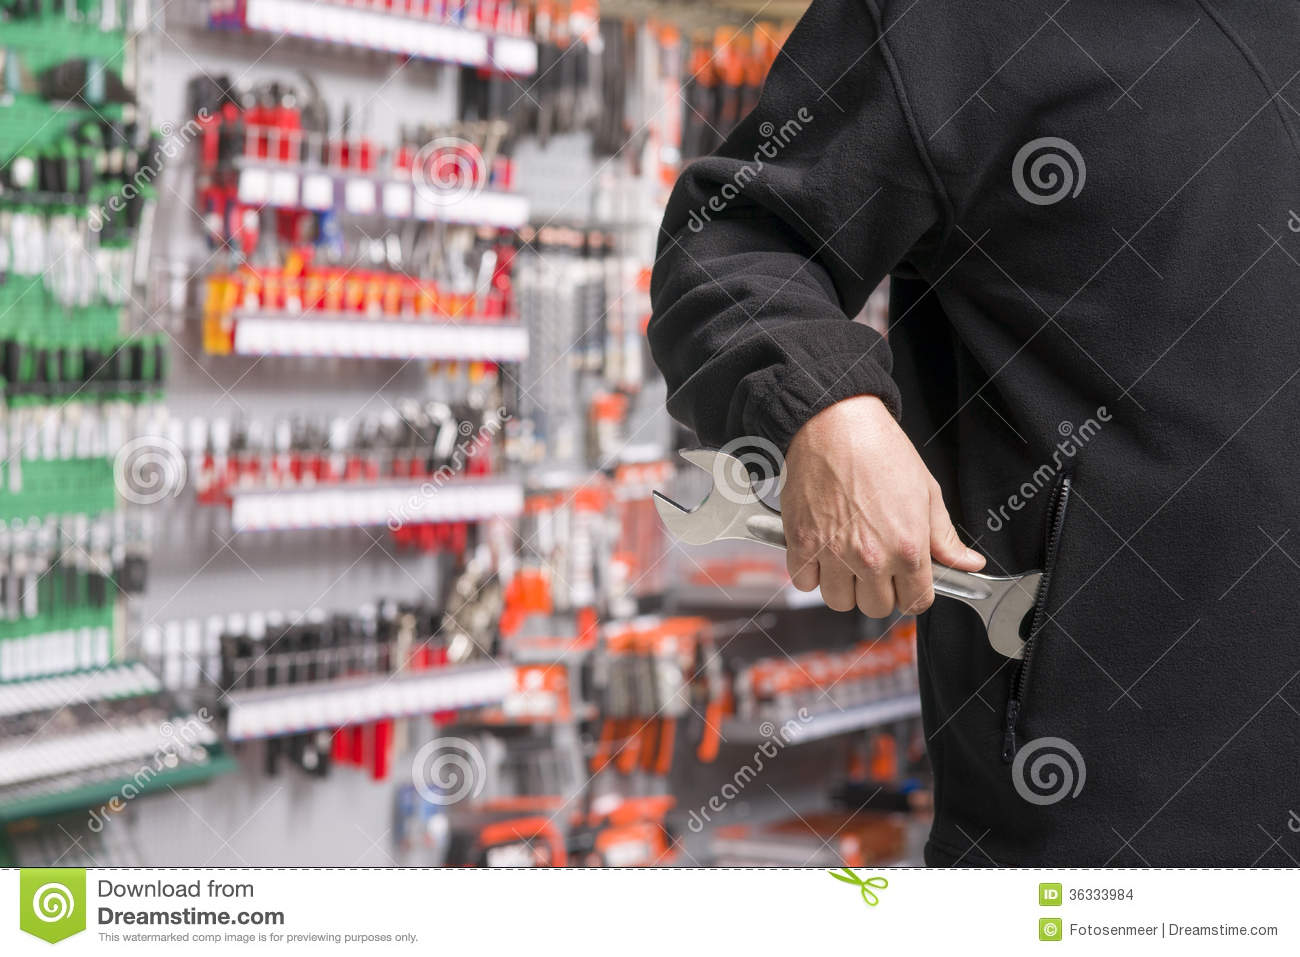 Shoplifter at work stock photo. Image of prevention ...